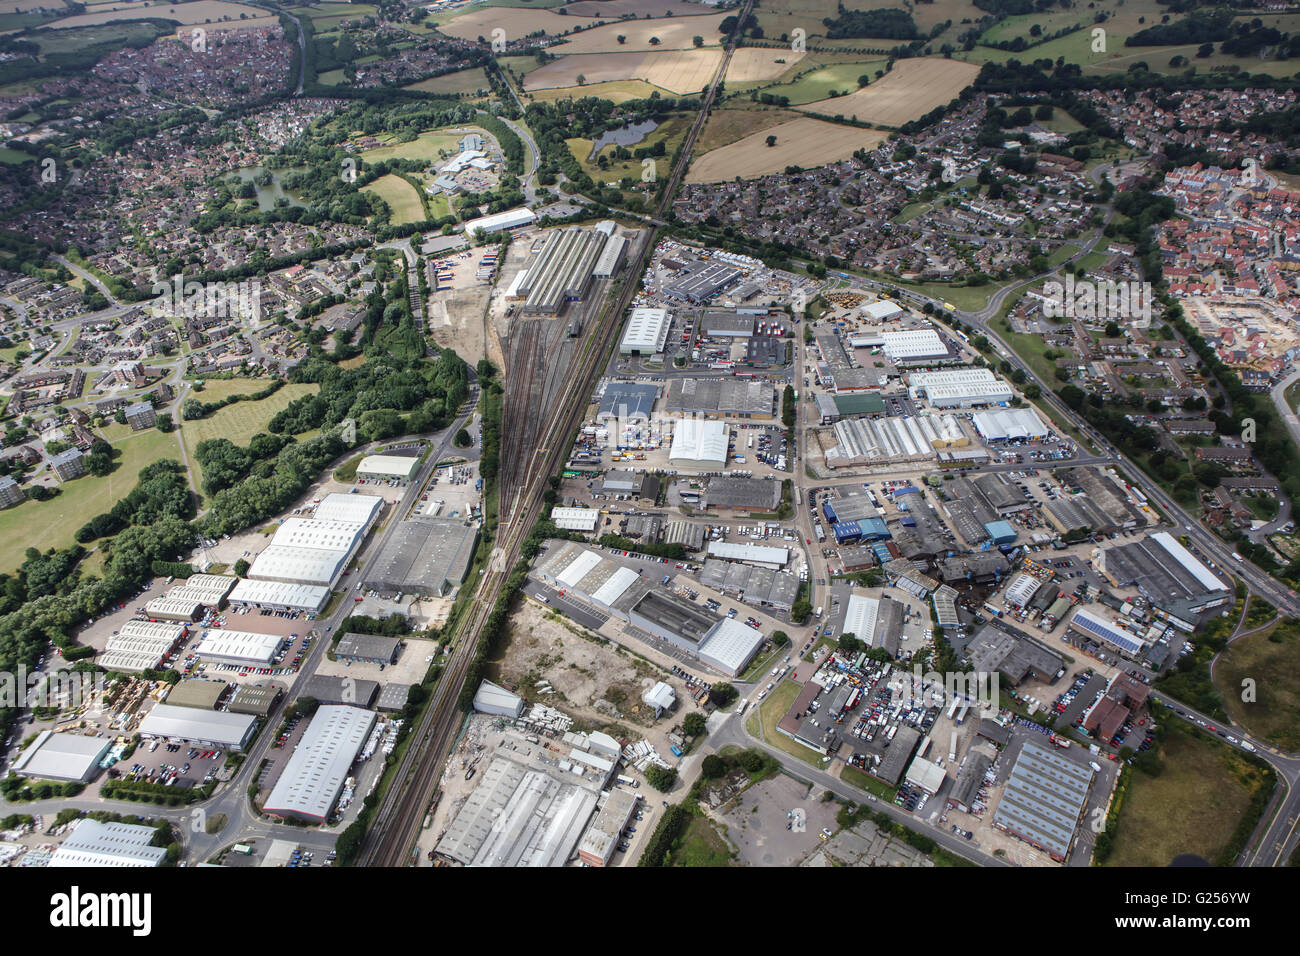 An aerial view of the Cobbswood Industrial Estate, Ashford, Kent - Stock Image